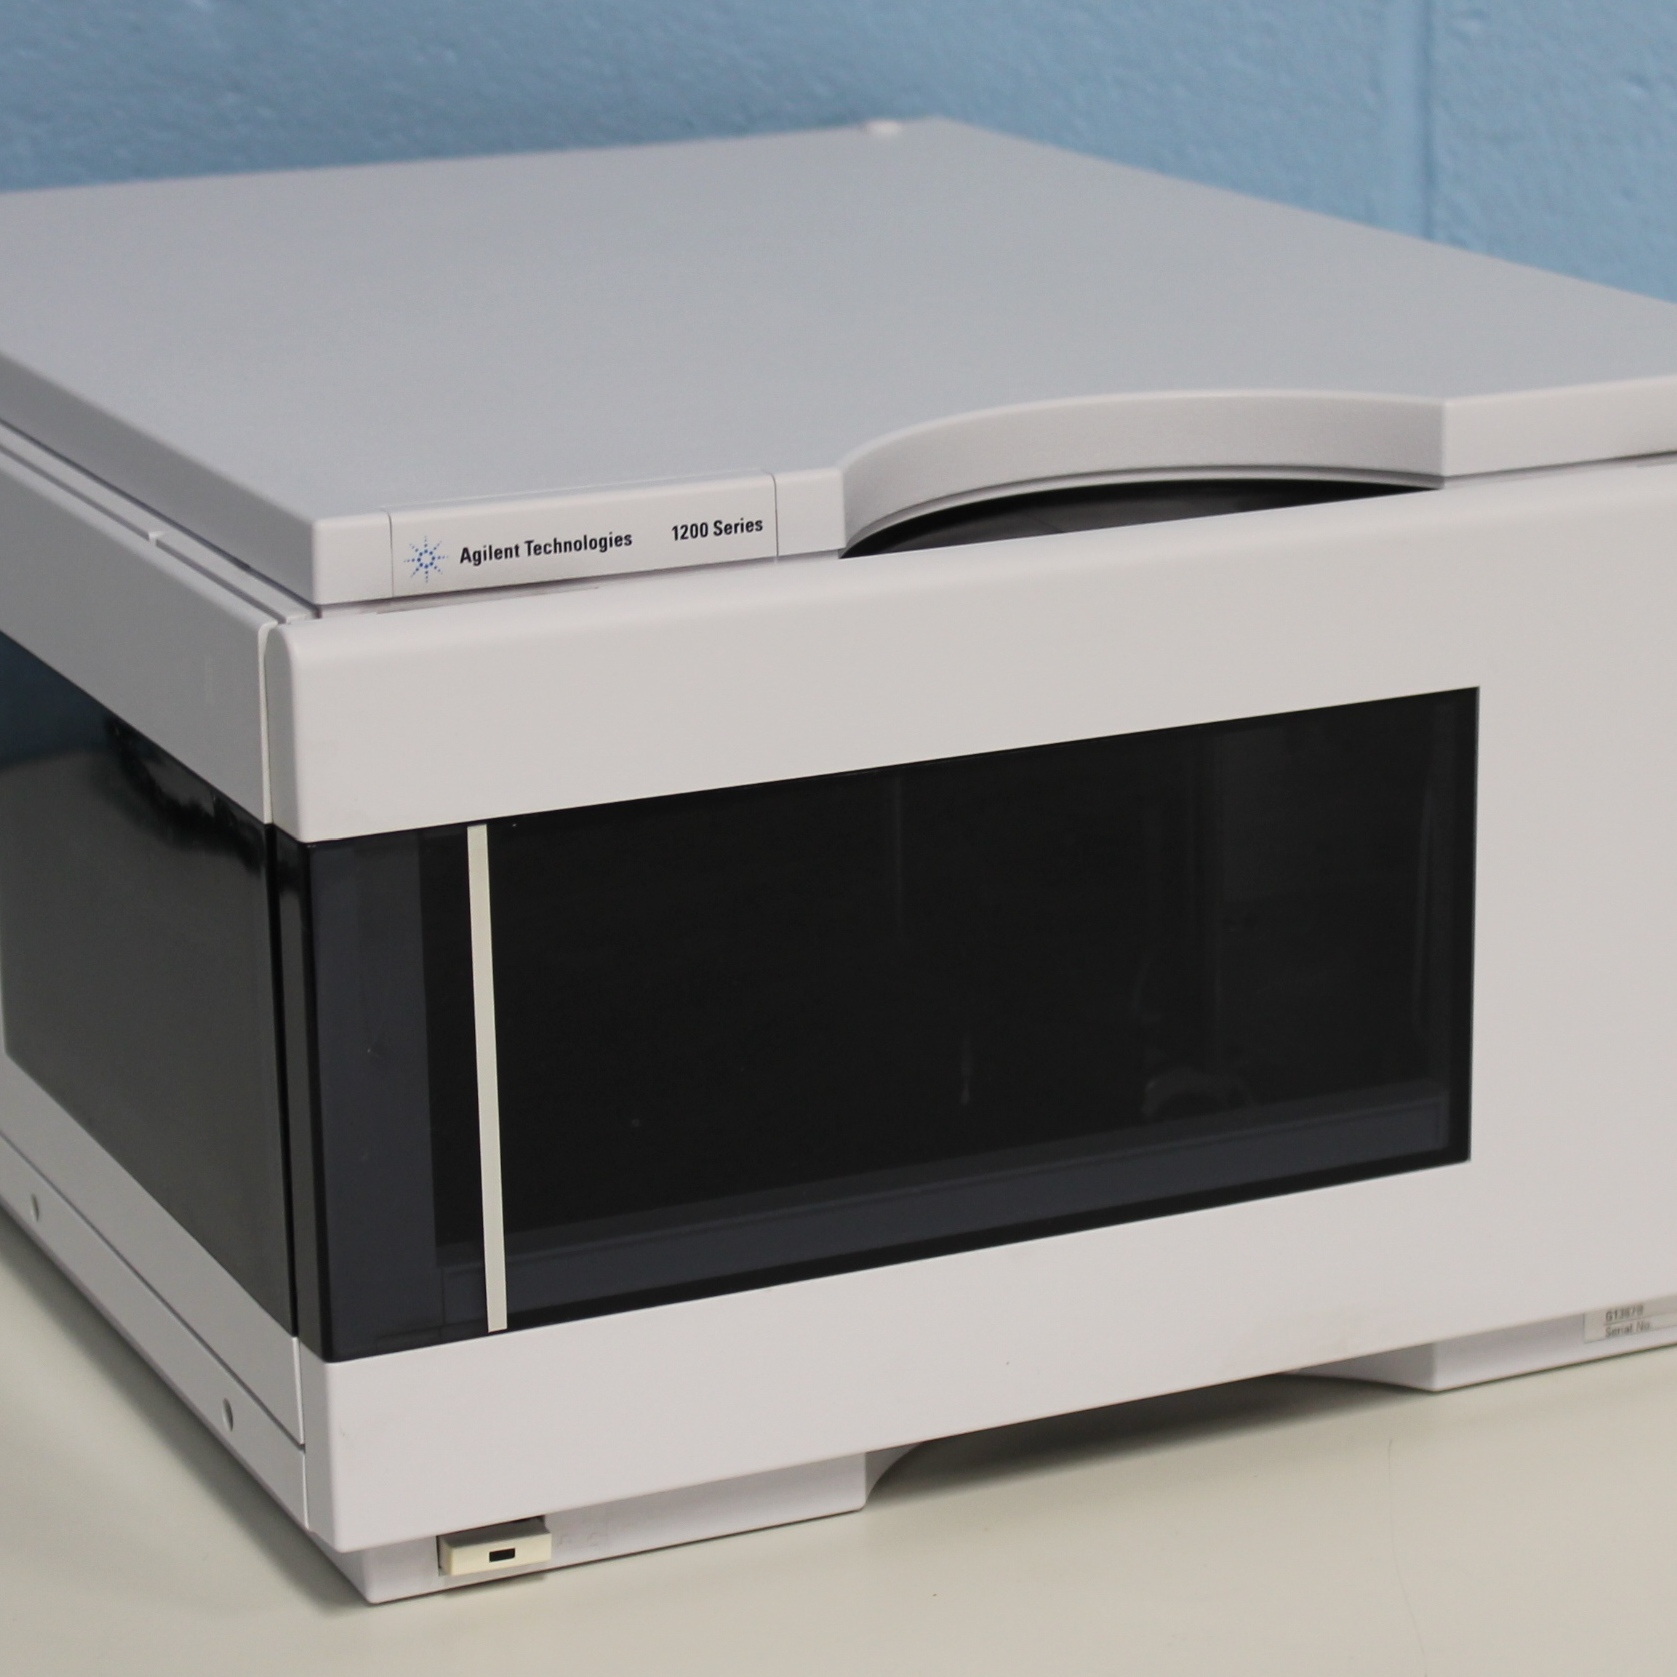 Agilent 1200 Series G1367B HIP-ALS High Performance Autosampler Image